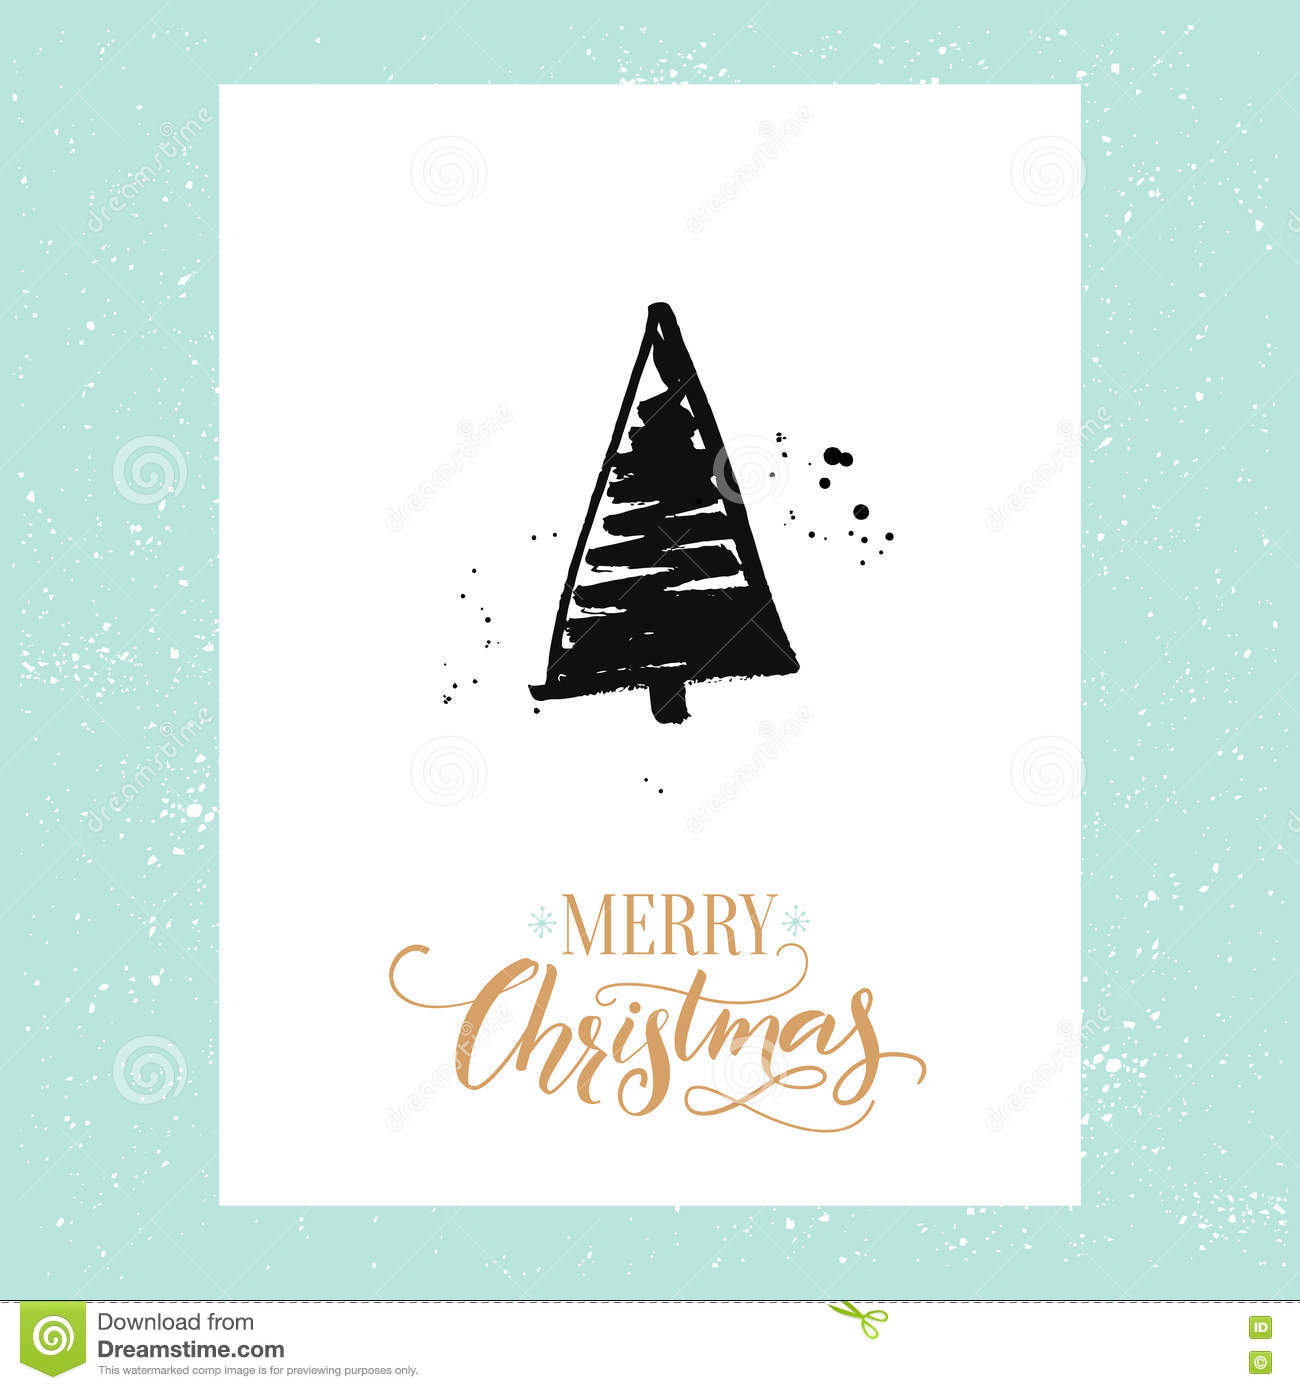 Merry christmas simple greeting card with hand drawn christmas tree merry christmas simple greeting card with hand drawn christmas tree vector design template with calligraphy type kristyandbryce Gallery